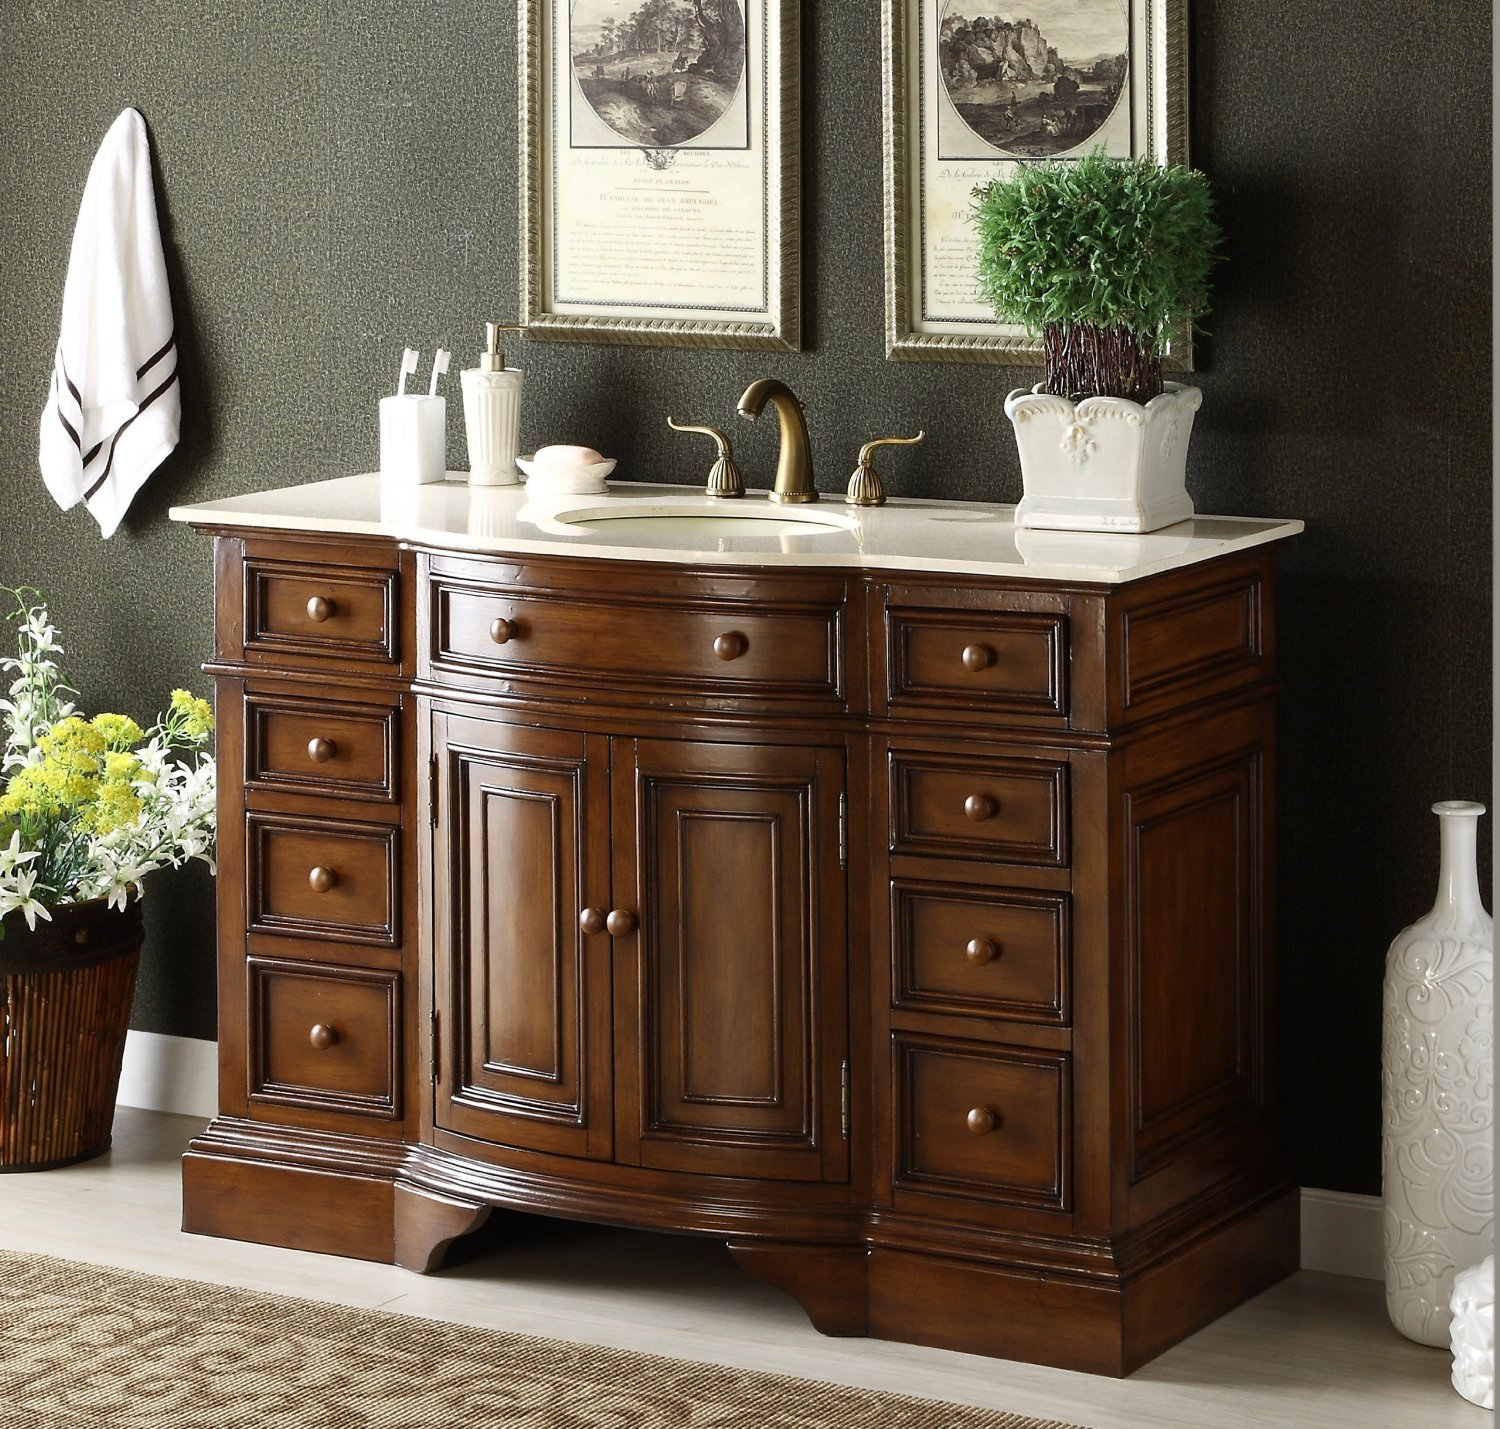 Adelina 51 inch Antique Bathroom Vanity Fully Assembled